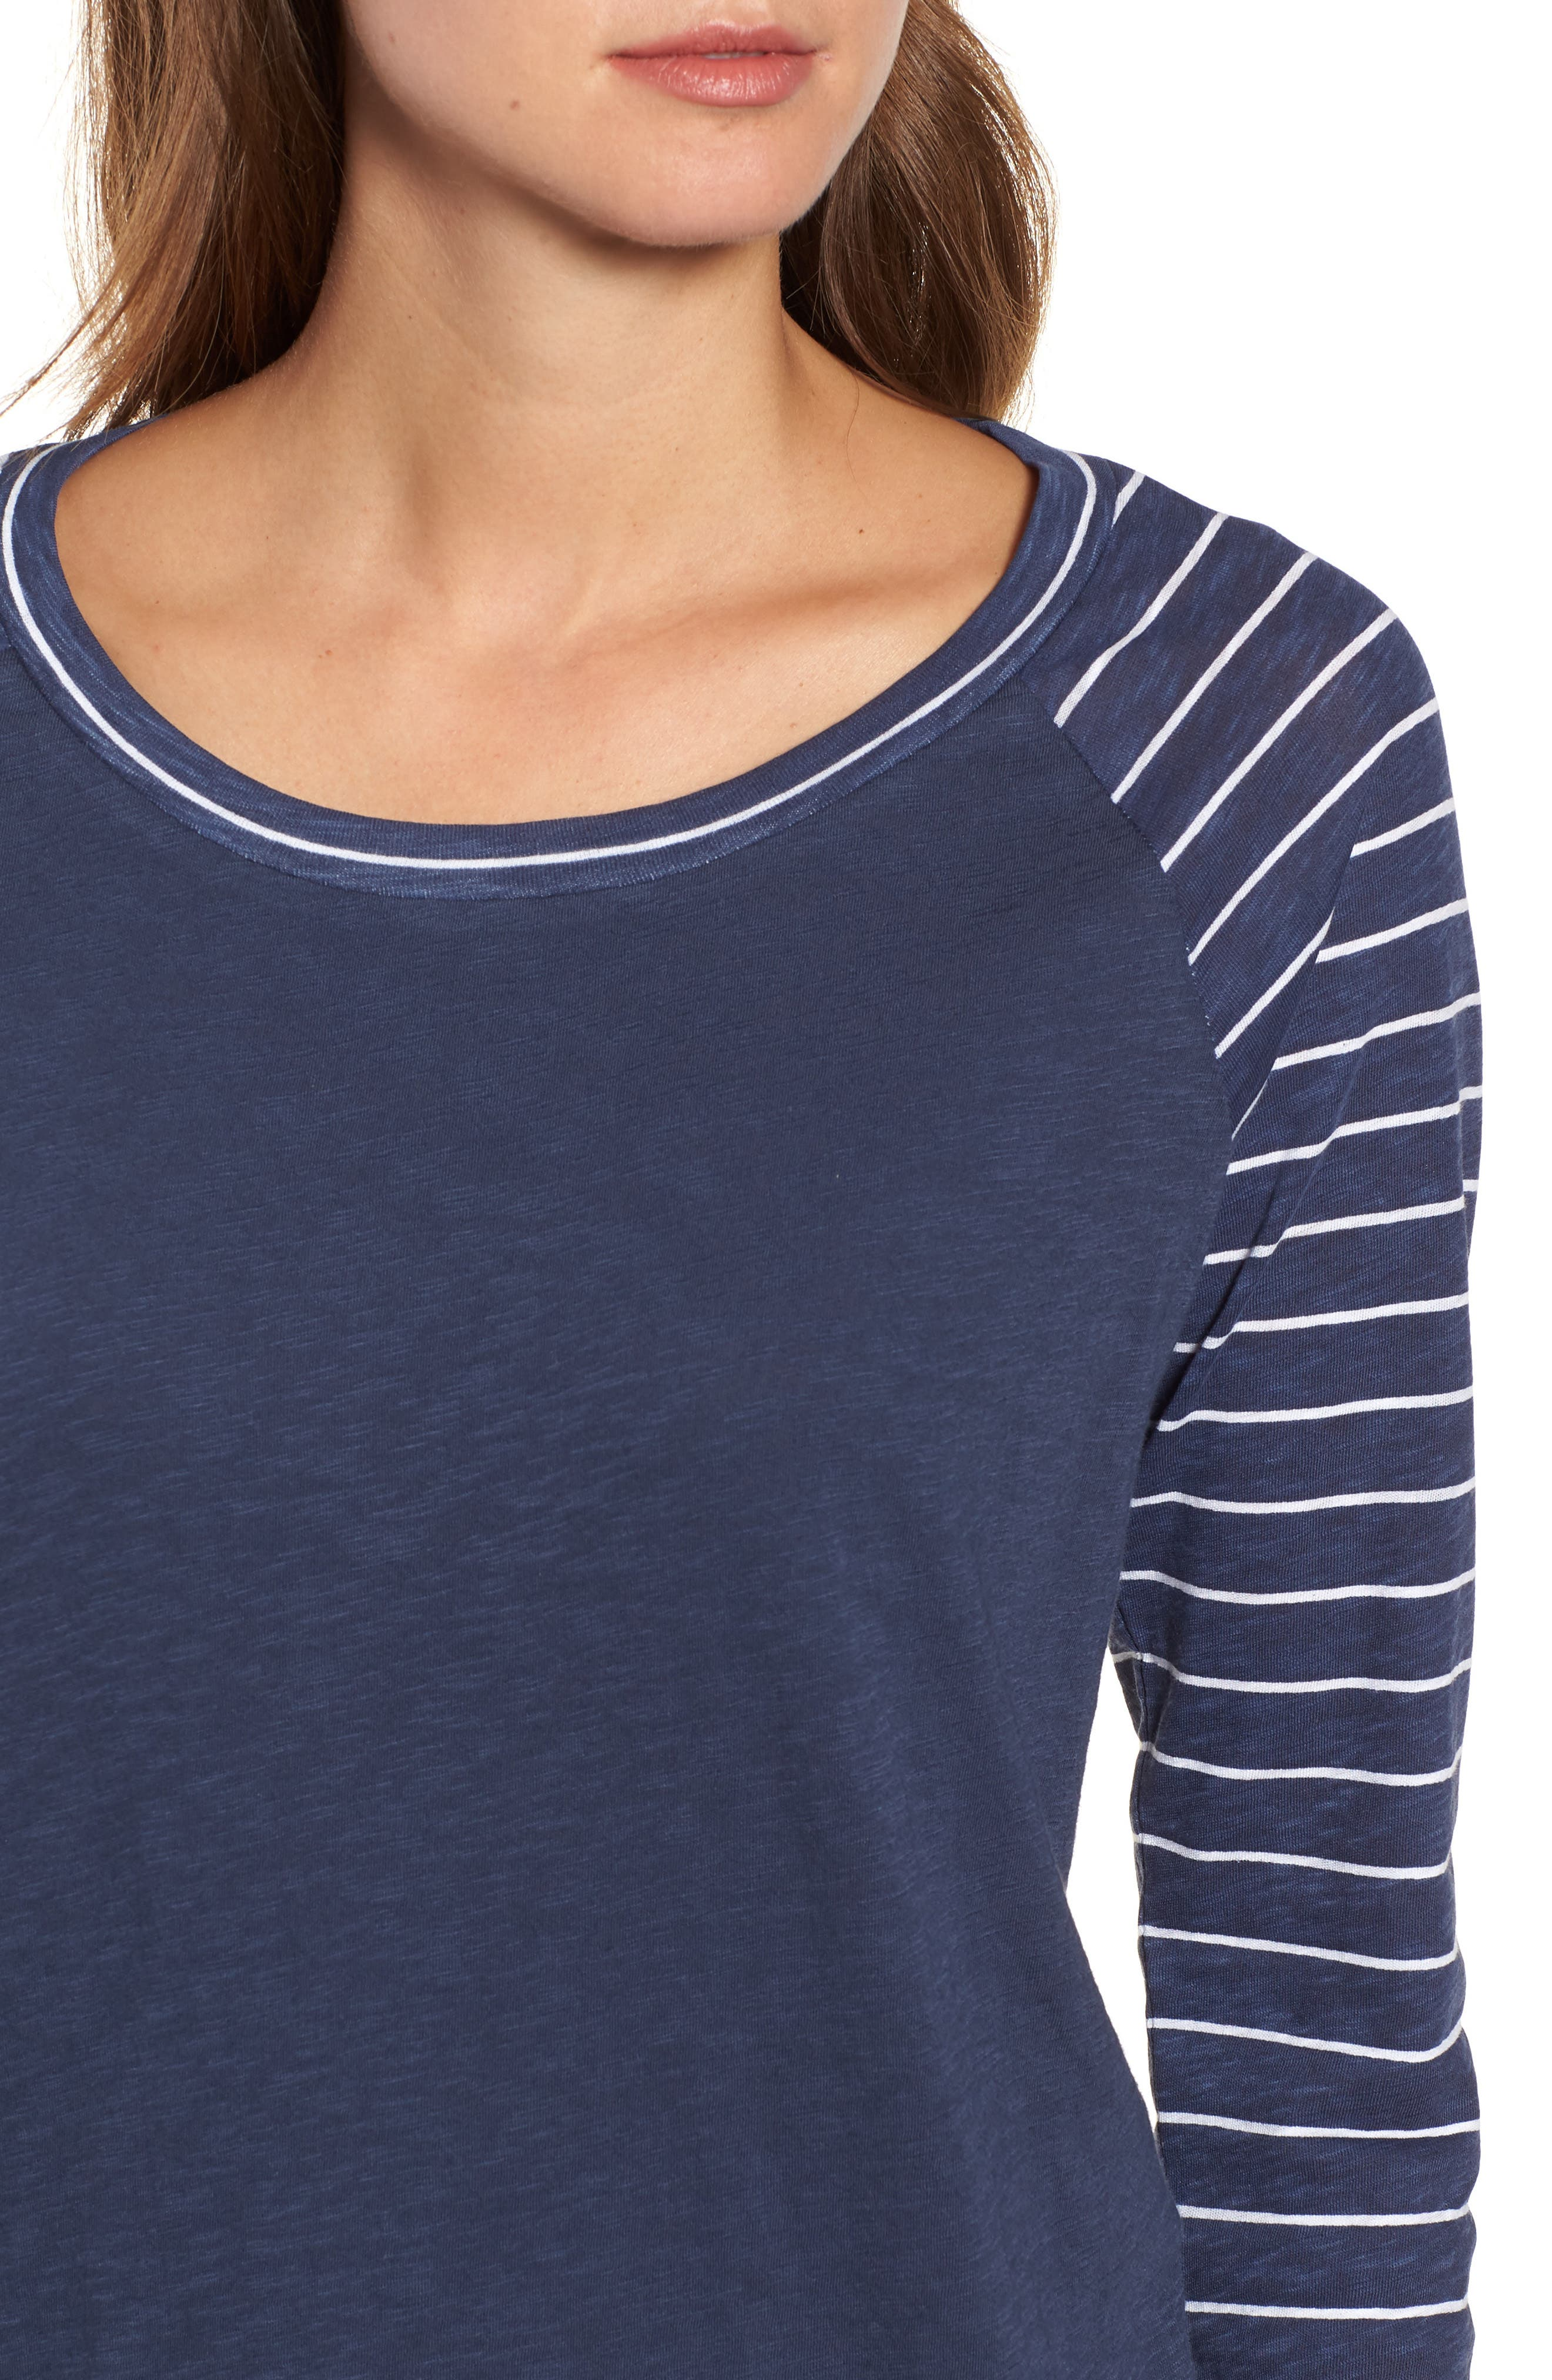 Lightweight Colorblock Cotton Tee,                             Alternate thumbnail 17, color,                             Navy- White